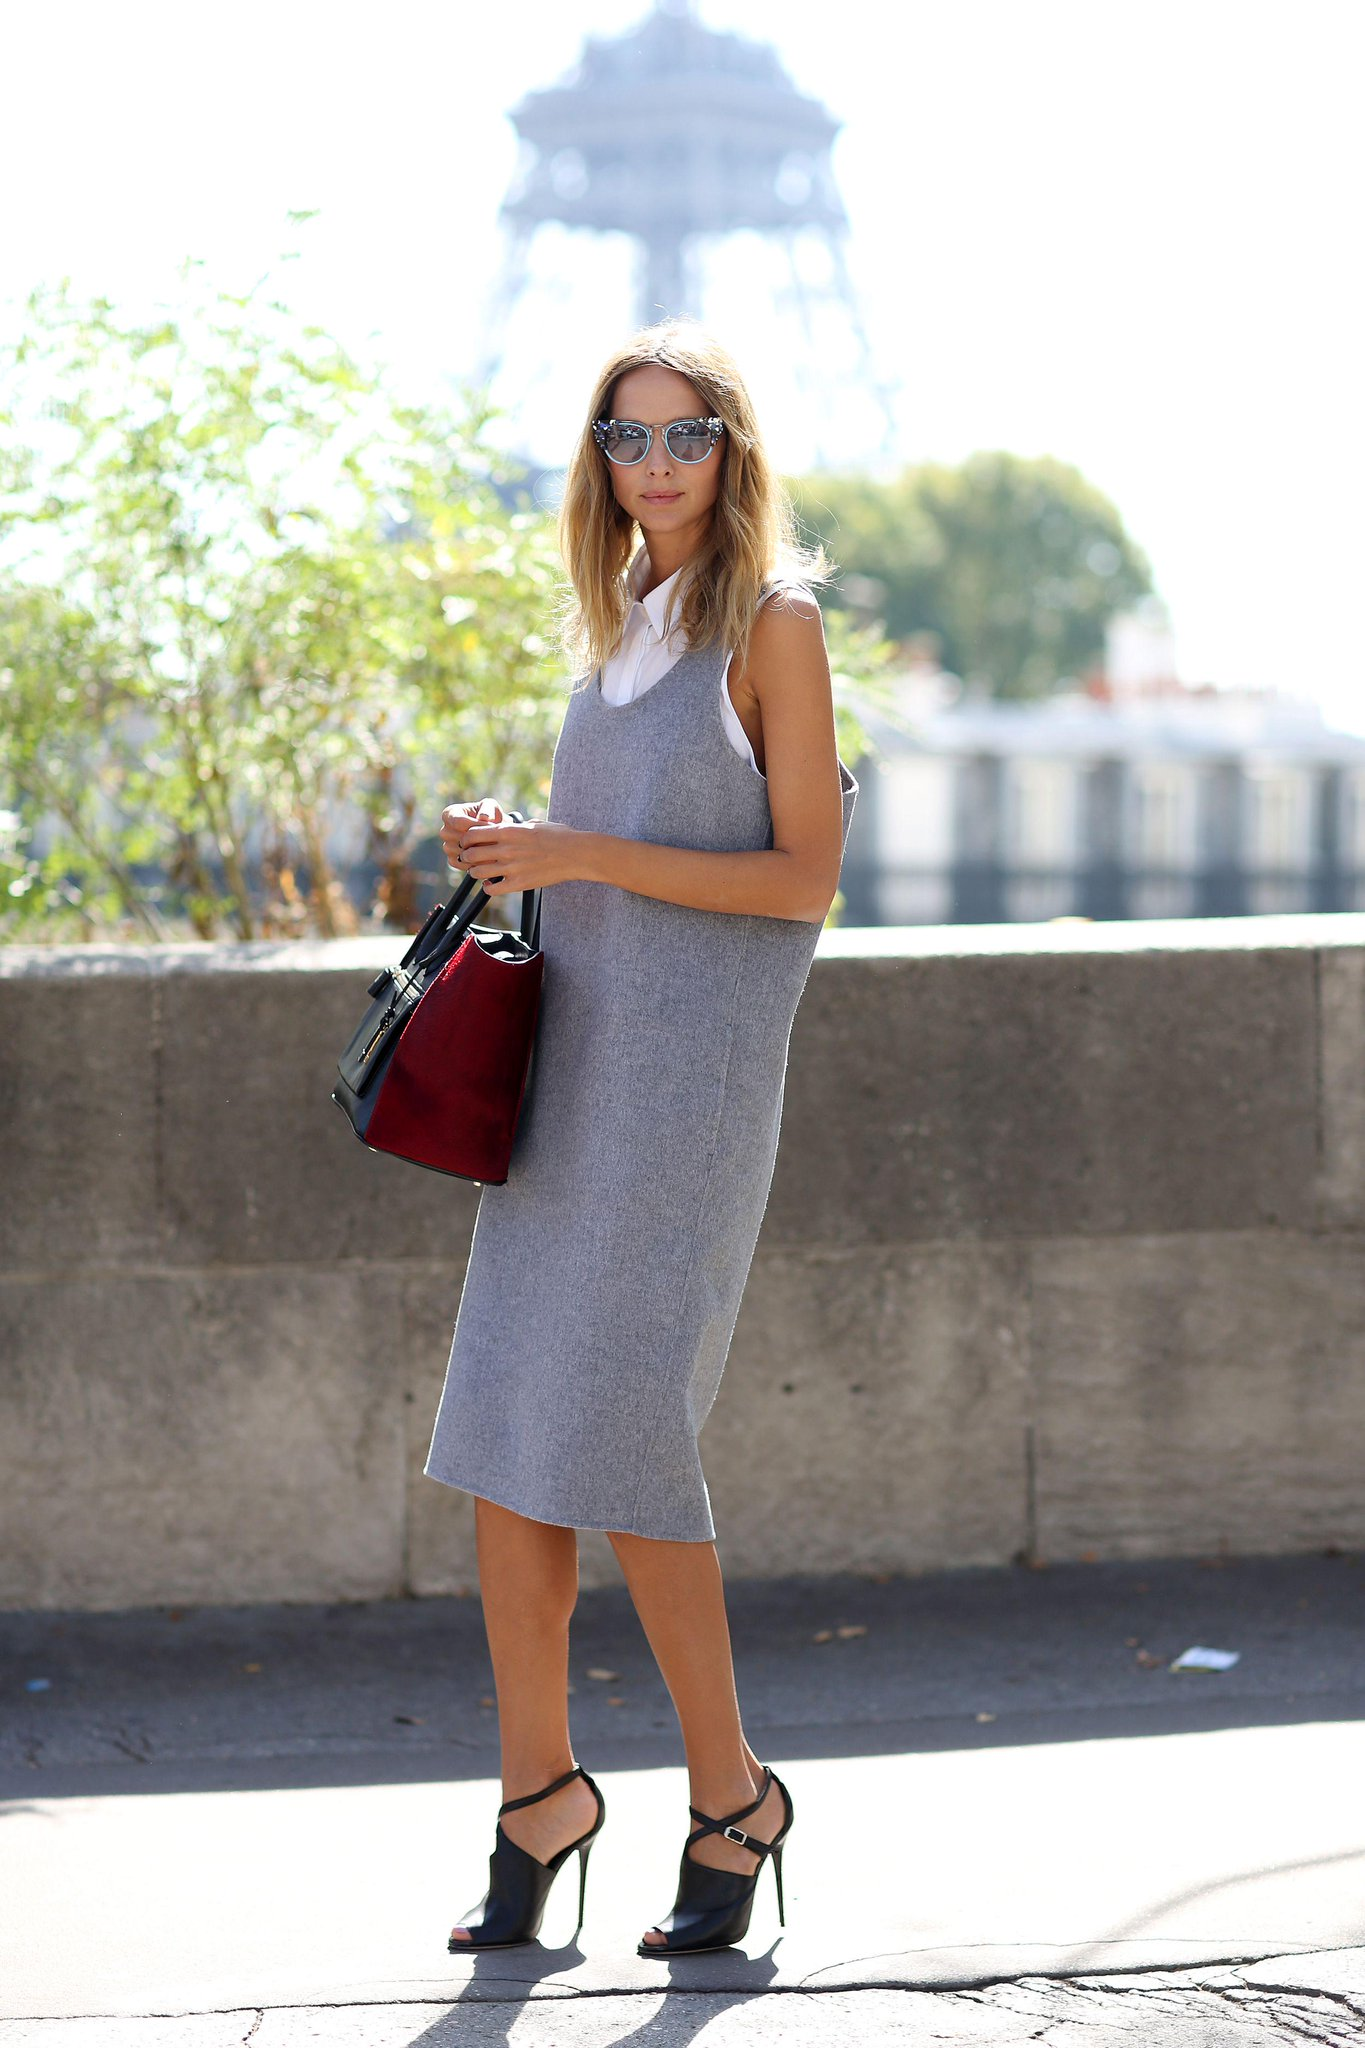 How to find a super-chic work bag, whatever your budget: http://t.co/alBLKICaSg http://t.co/lr7WgtjKfO